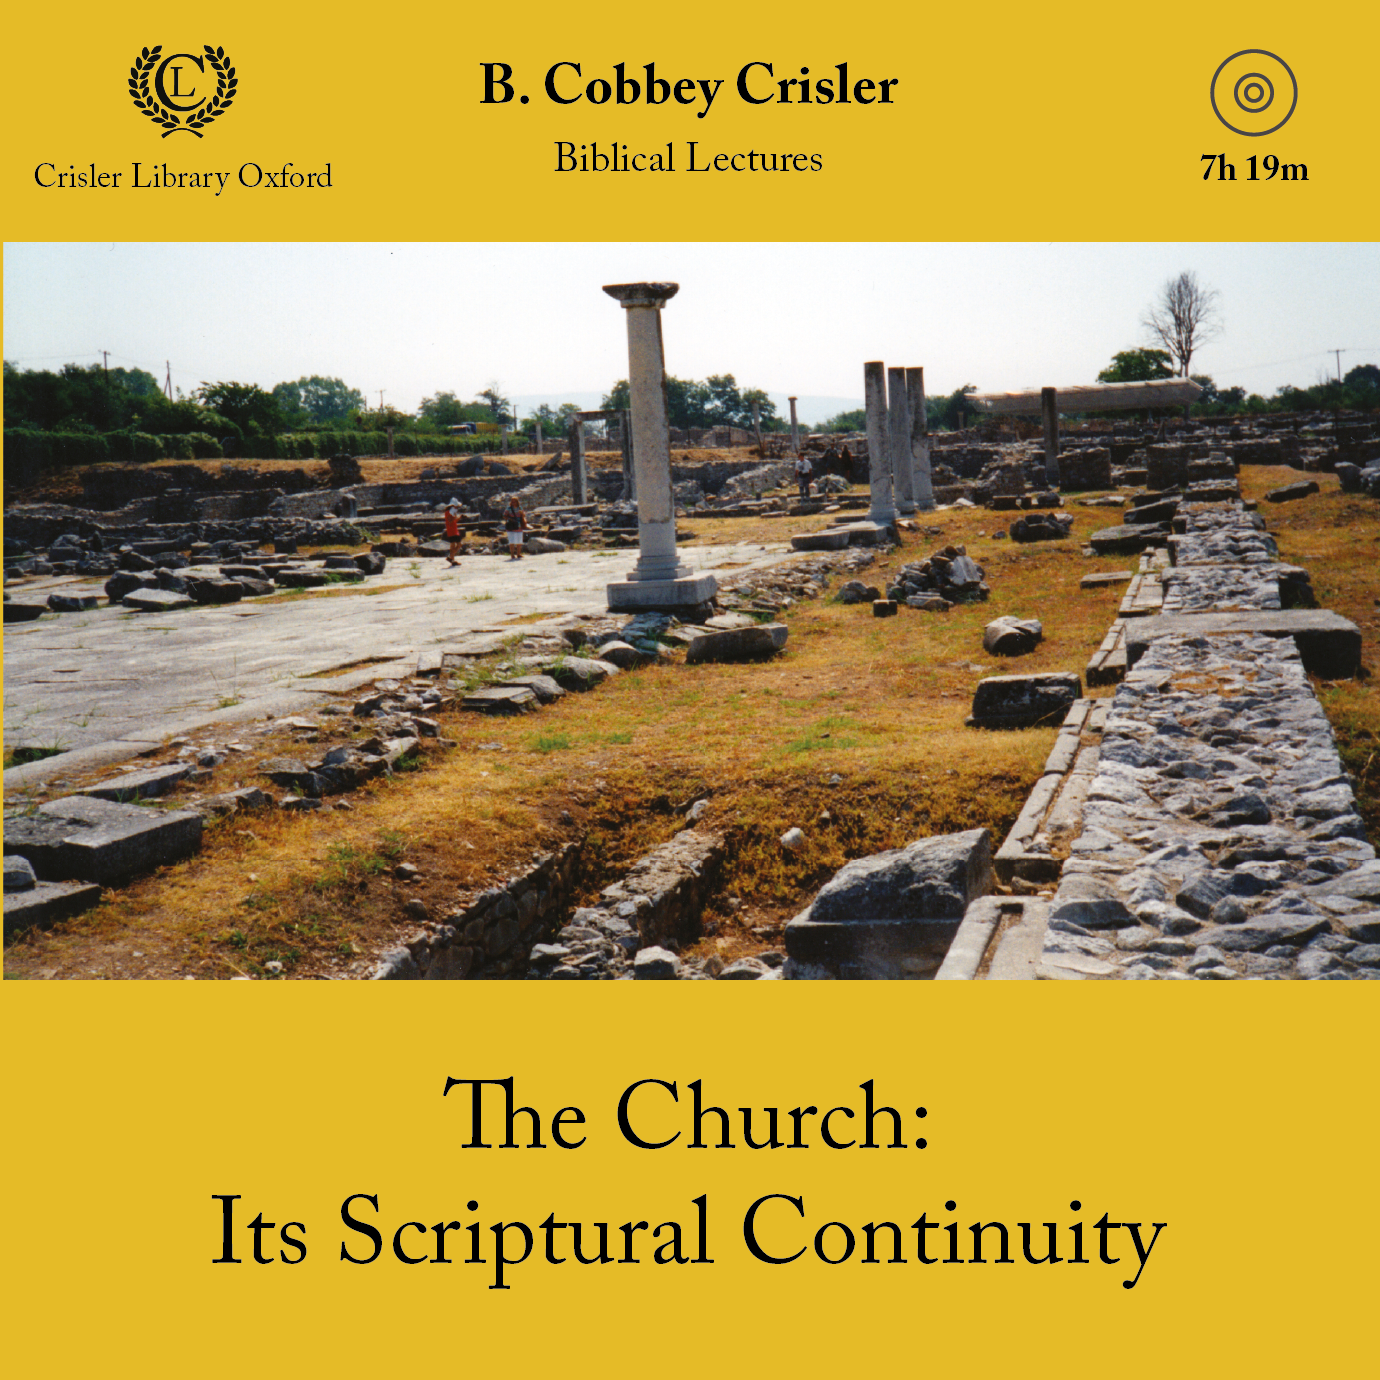 The Church: Its Scriptural Continuity